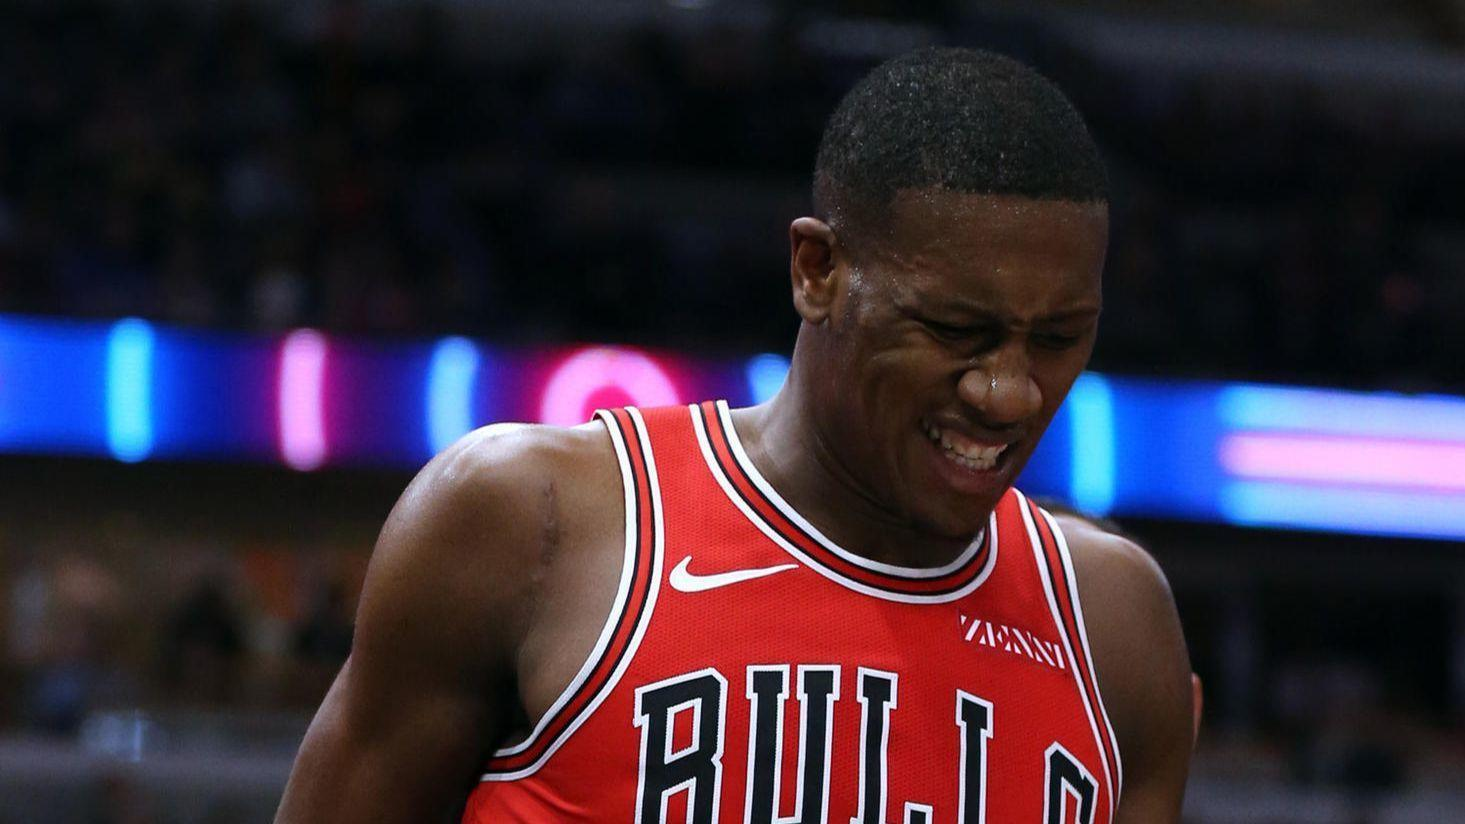 Kris Dunn's role with the Bulls keeps evolving, and he gets some swagger back with 26-point, 13-assist game in OT win over Wizards